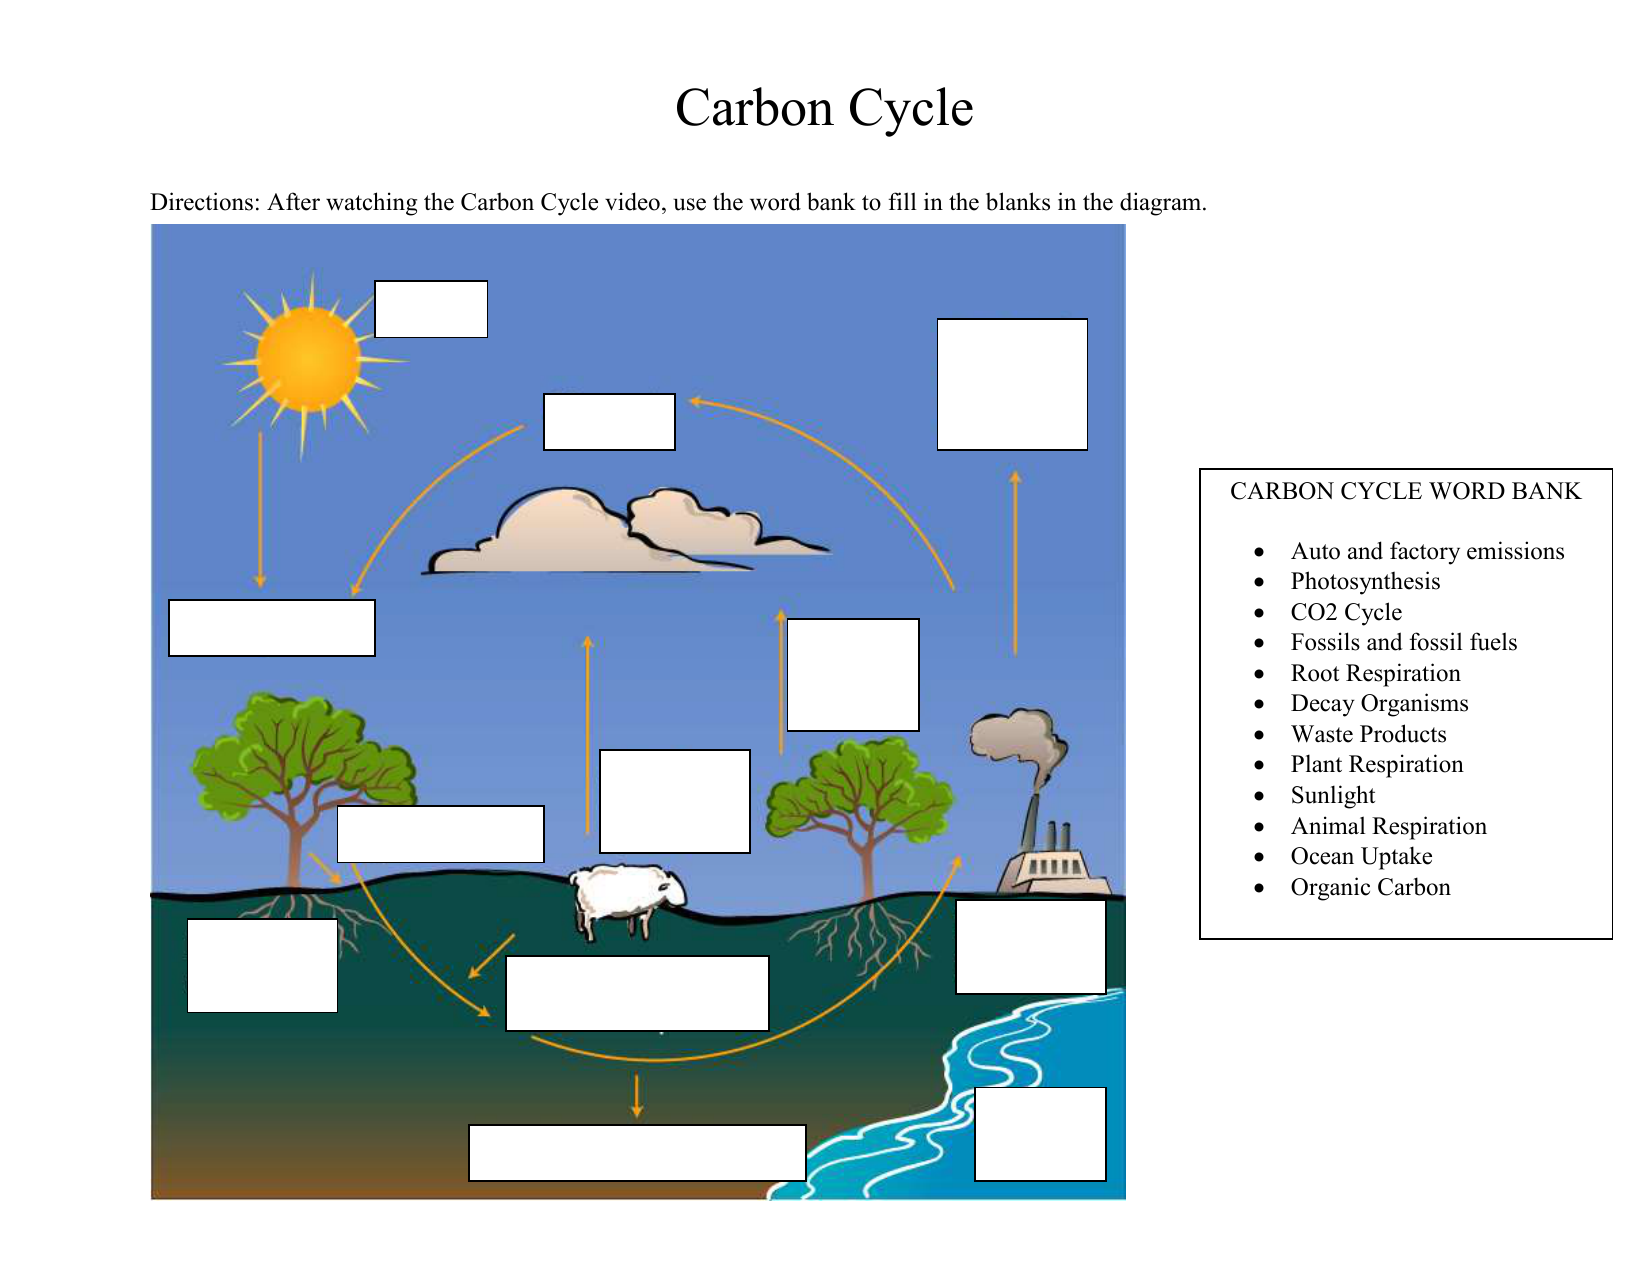 after watching the carbon cycle video, use the word bank to fill in